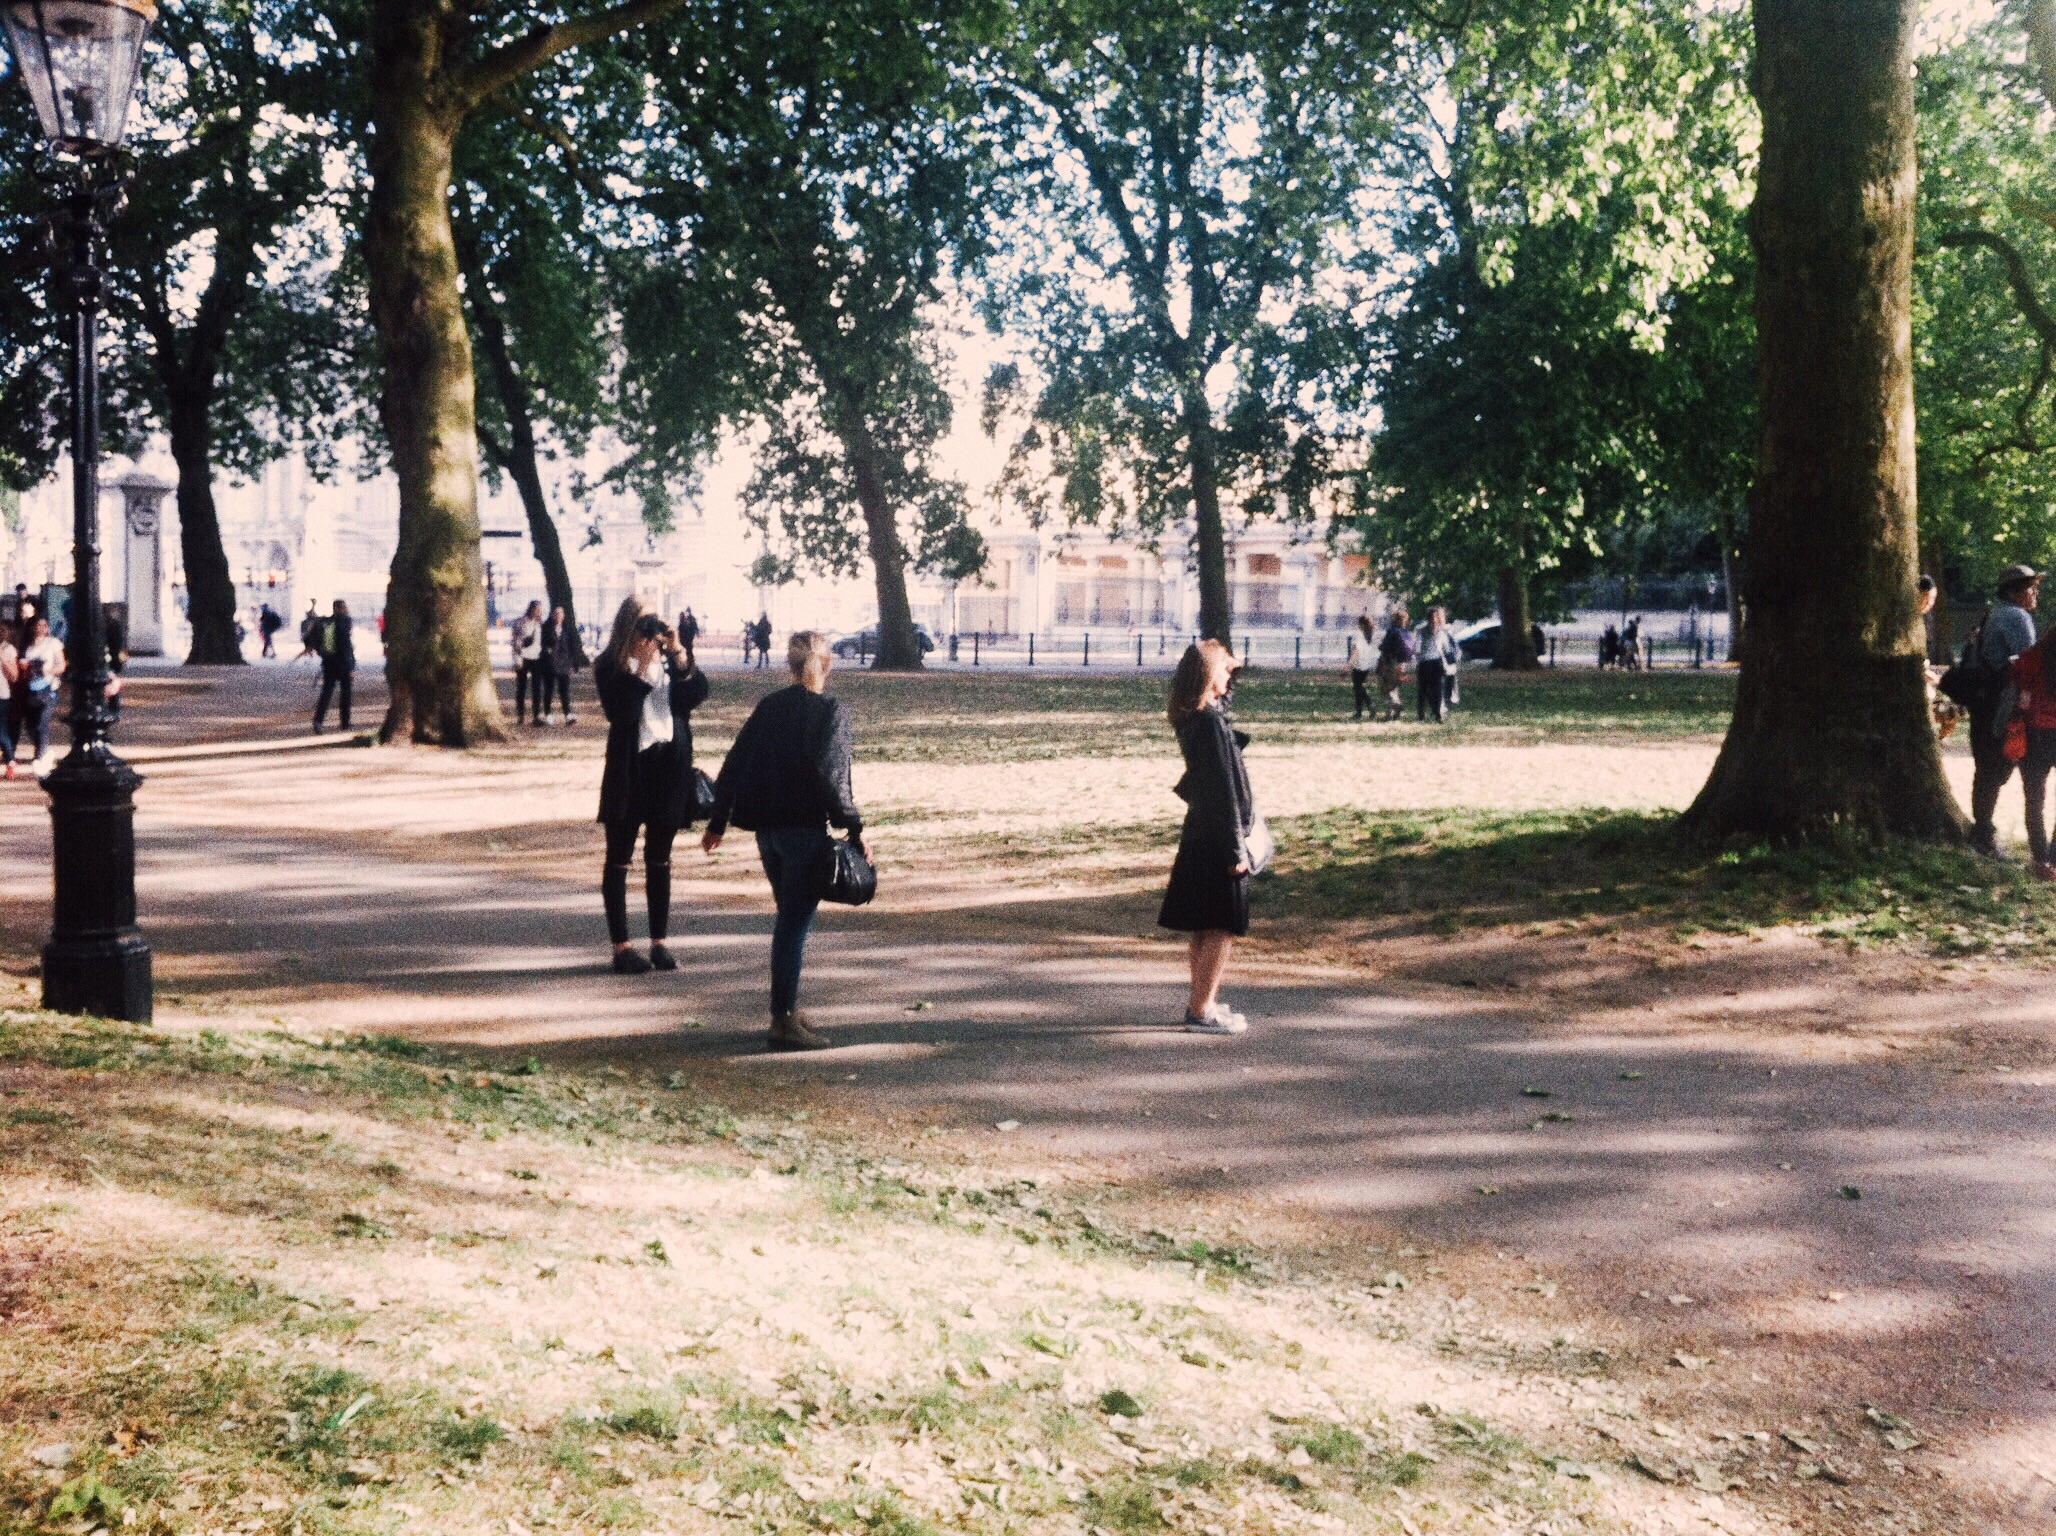 Caught snapping near Buckingham Palace, June '15